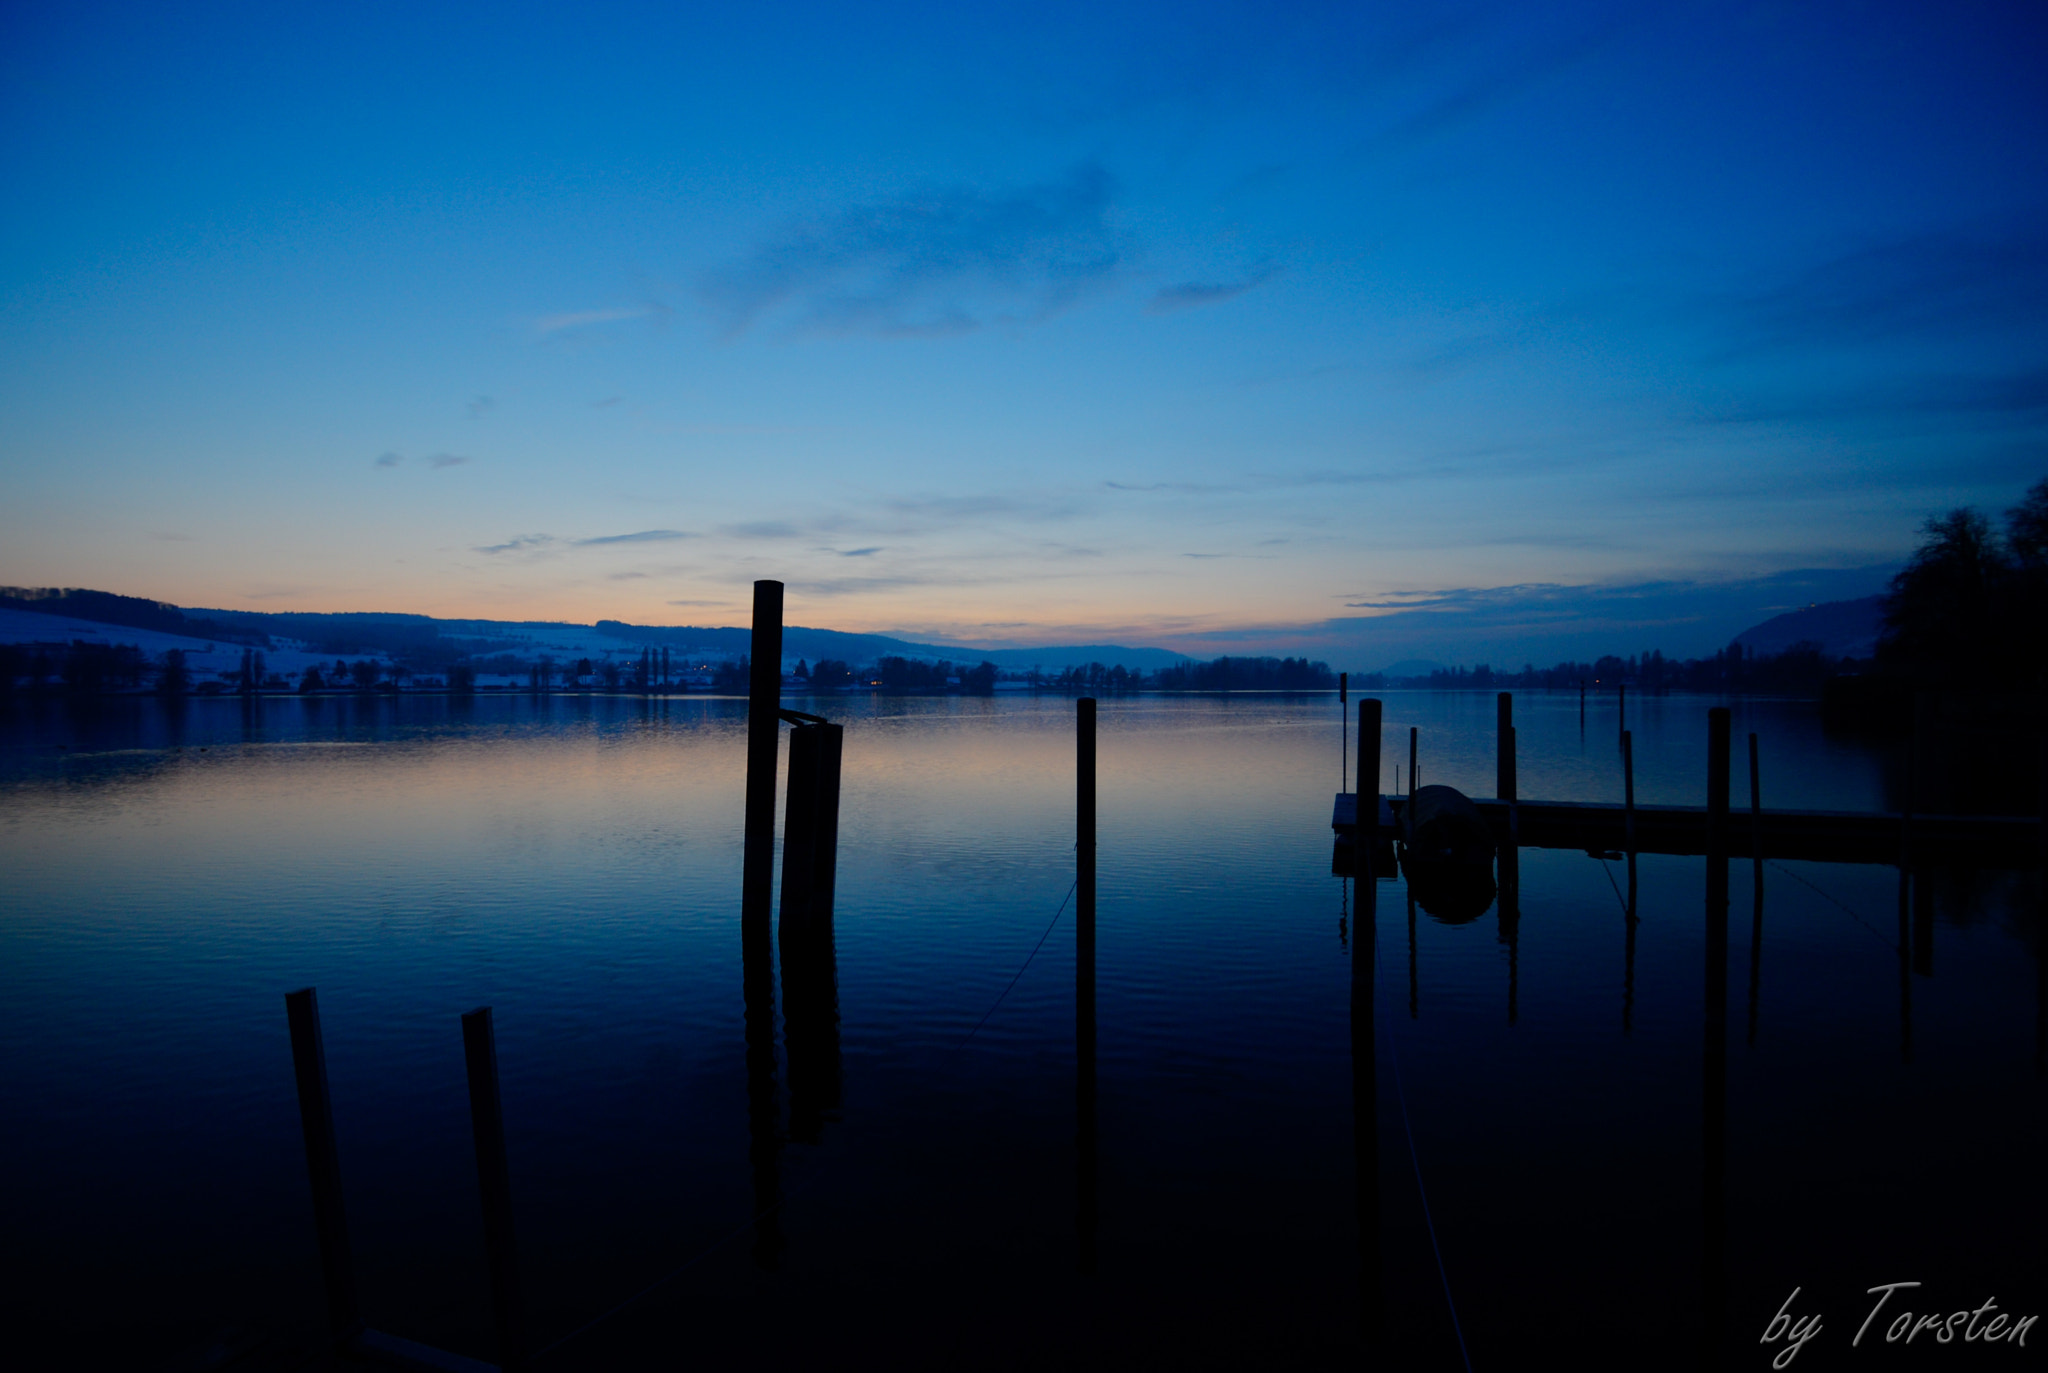 Photograph Winter evening at the lake Constance (PT II) by Torsten Trunz on 500px